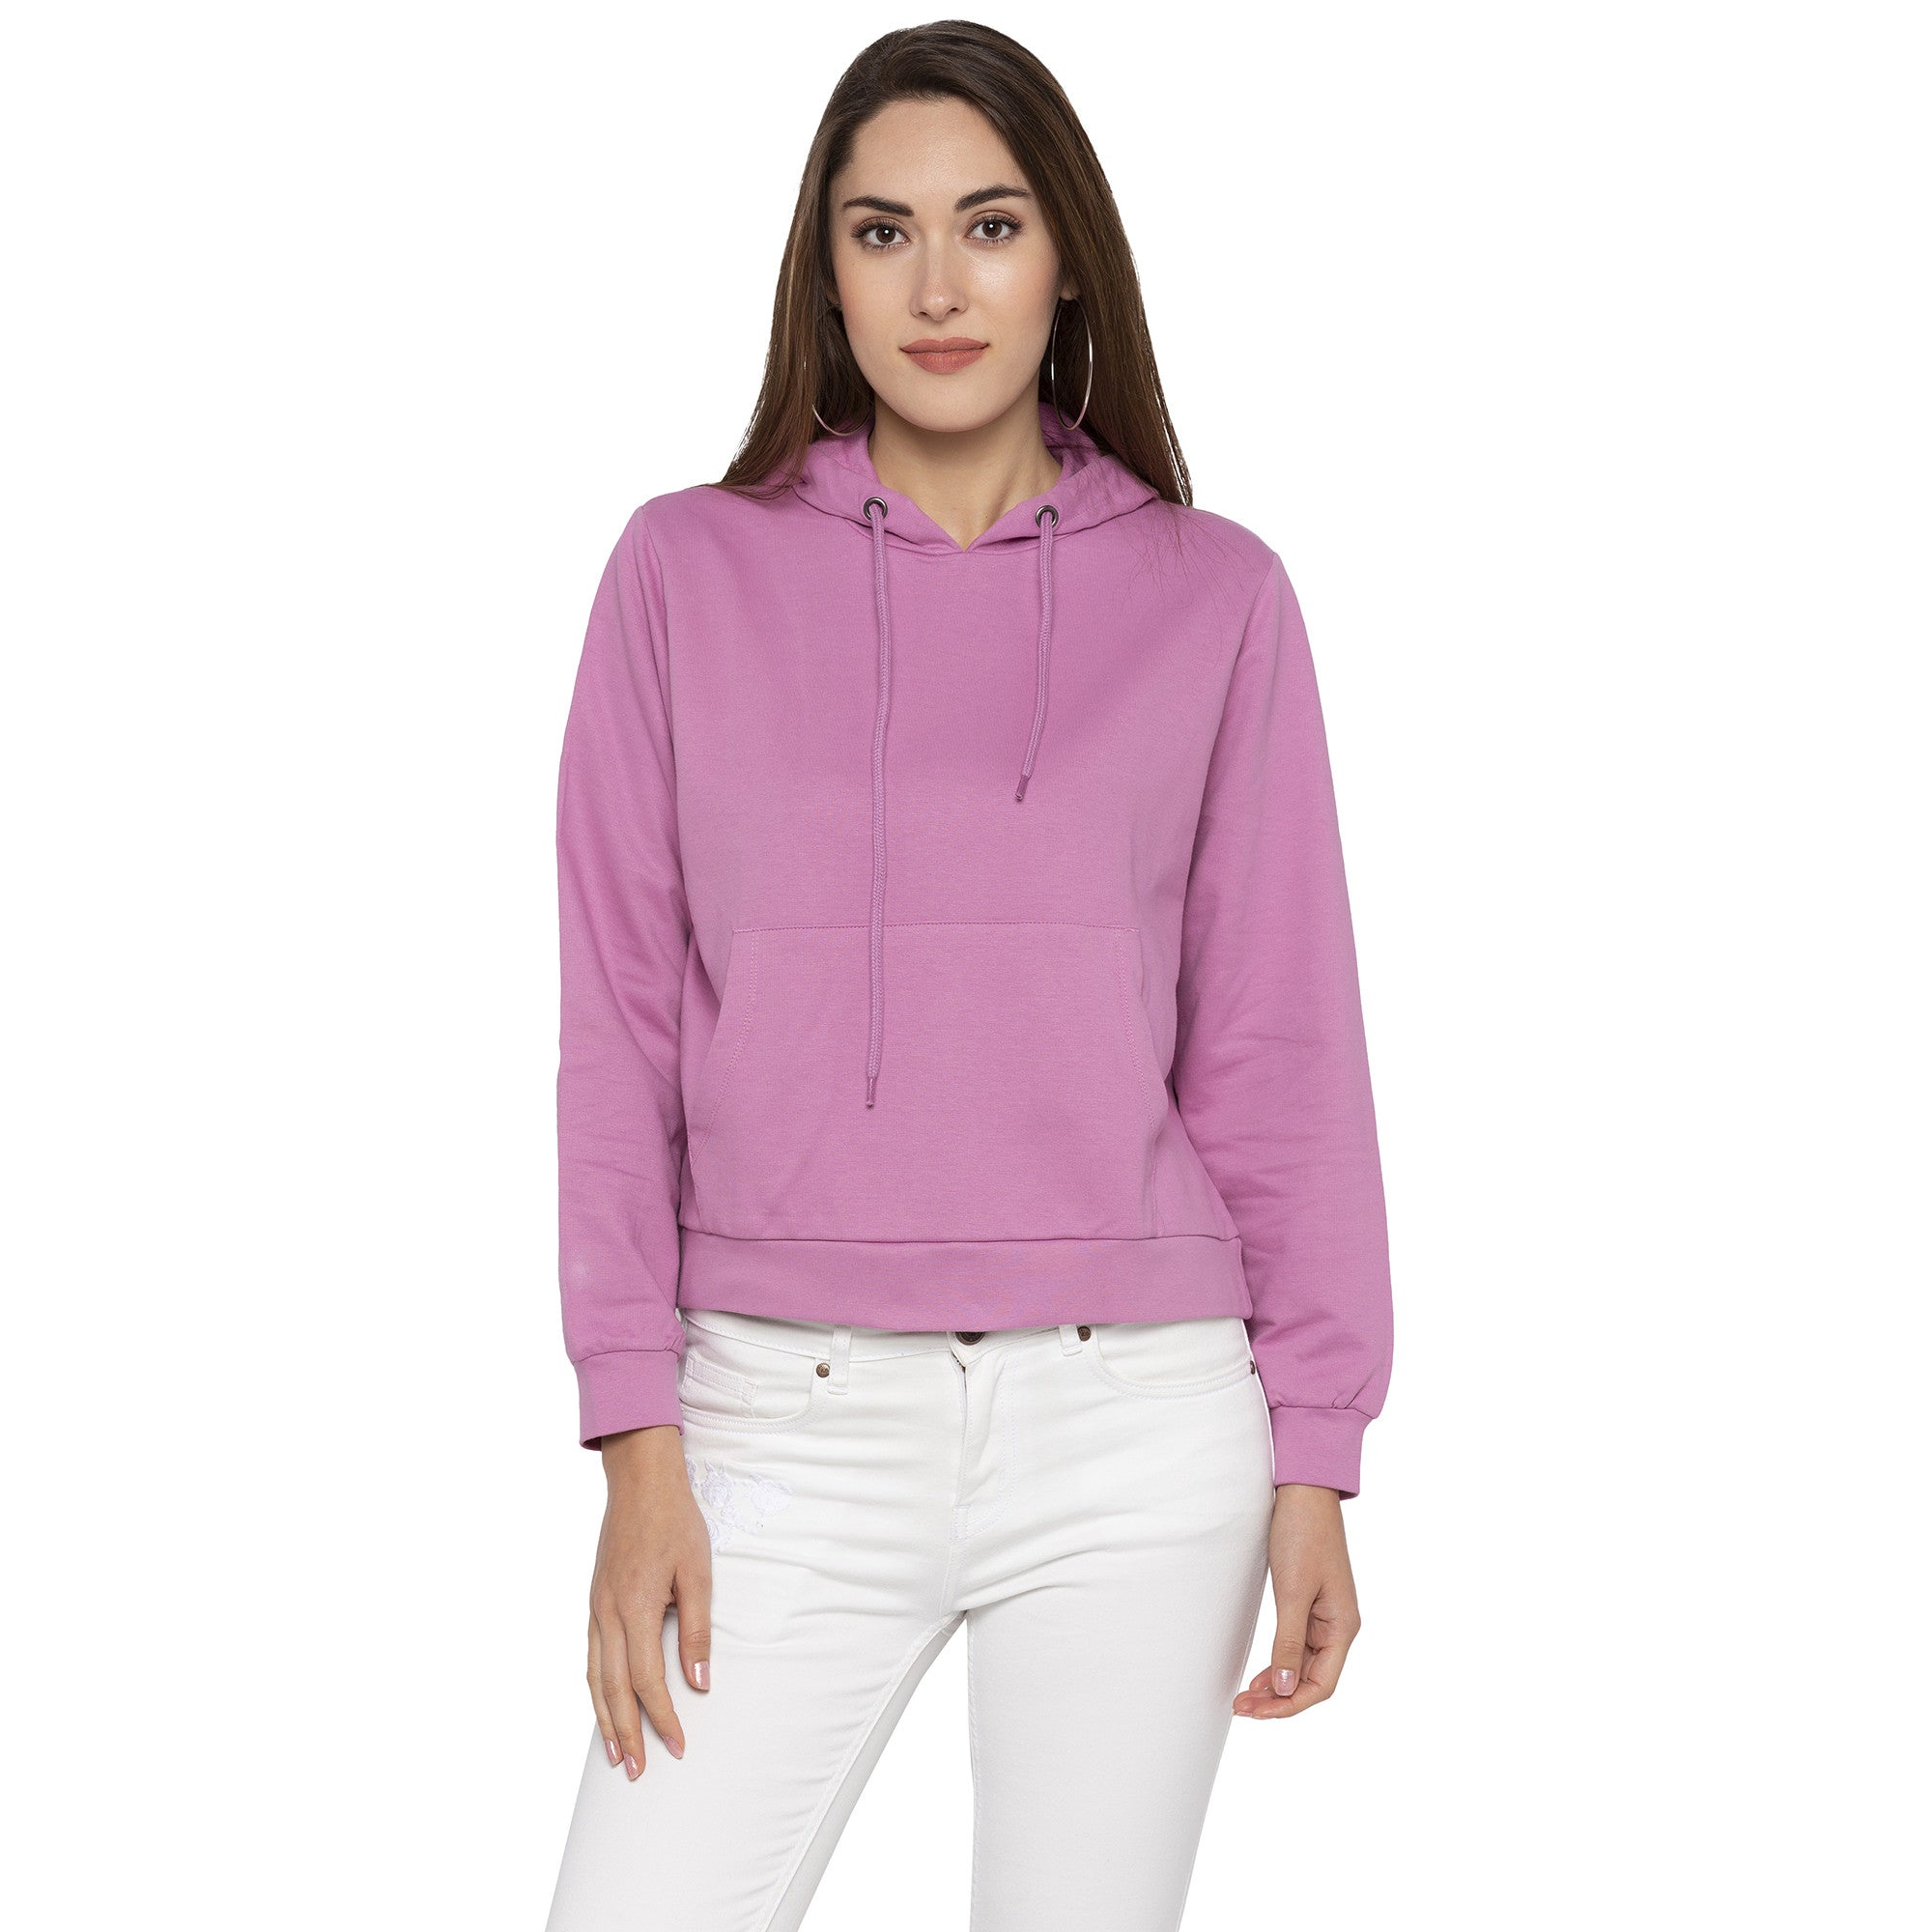 Casual Pink Color Solid Hooded Sweatshirt-1